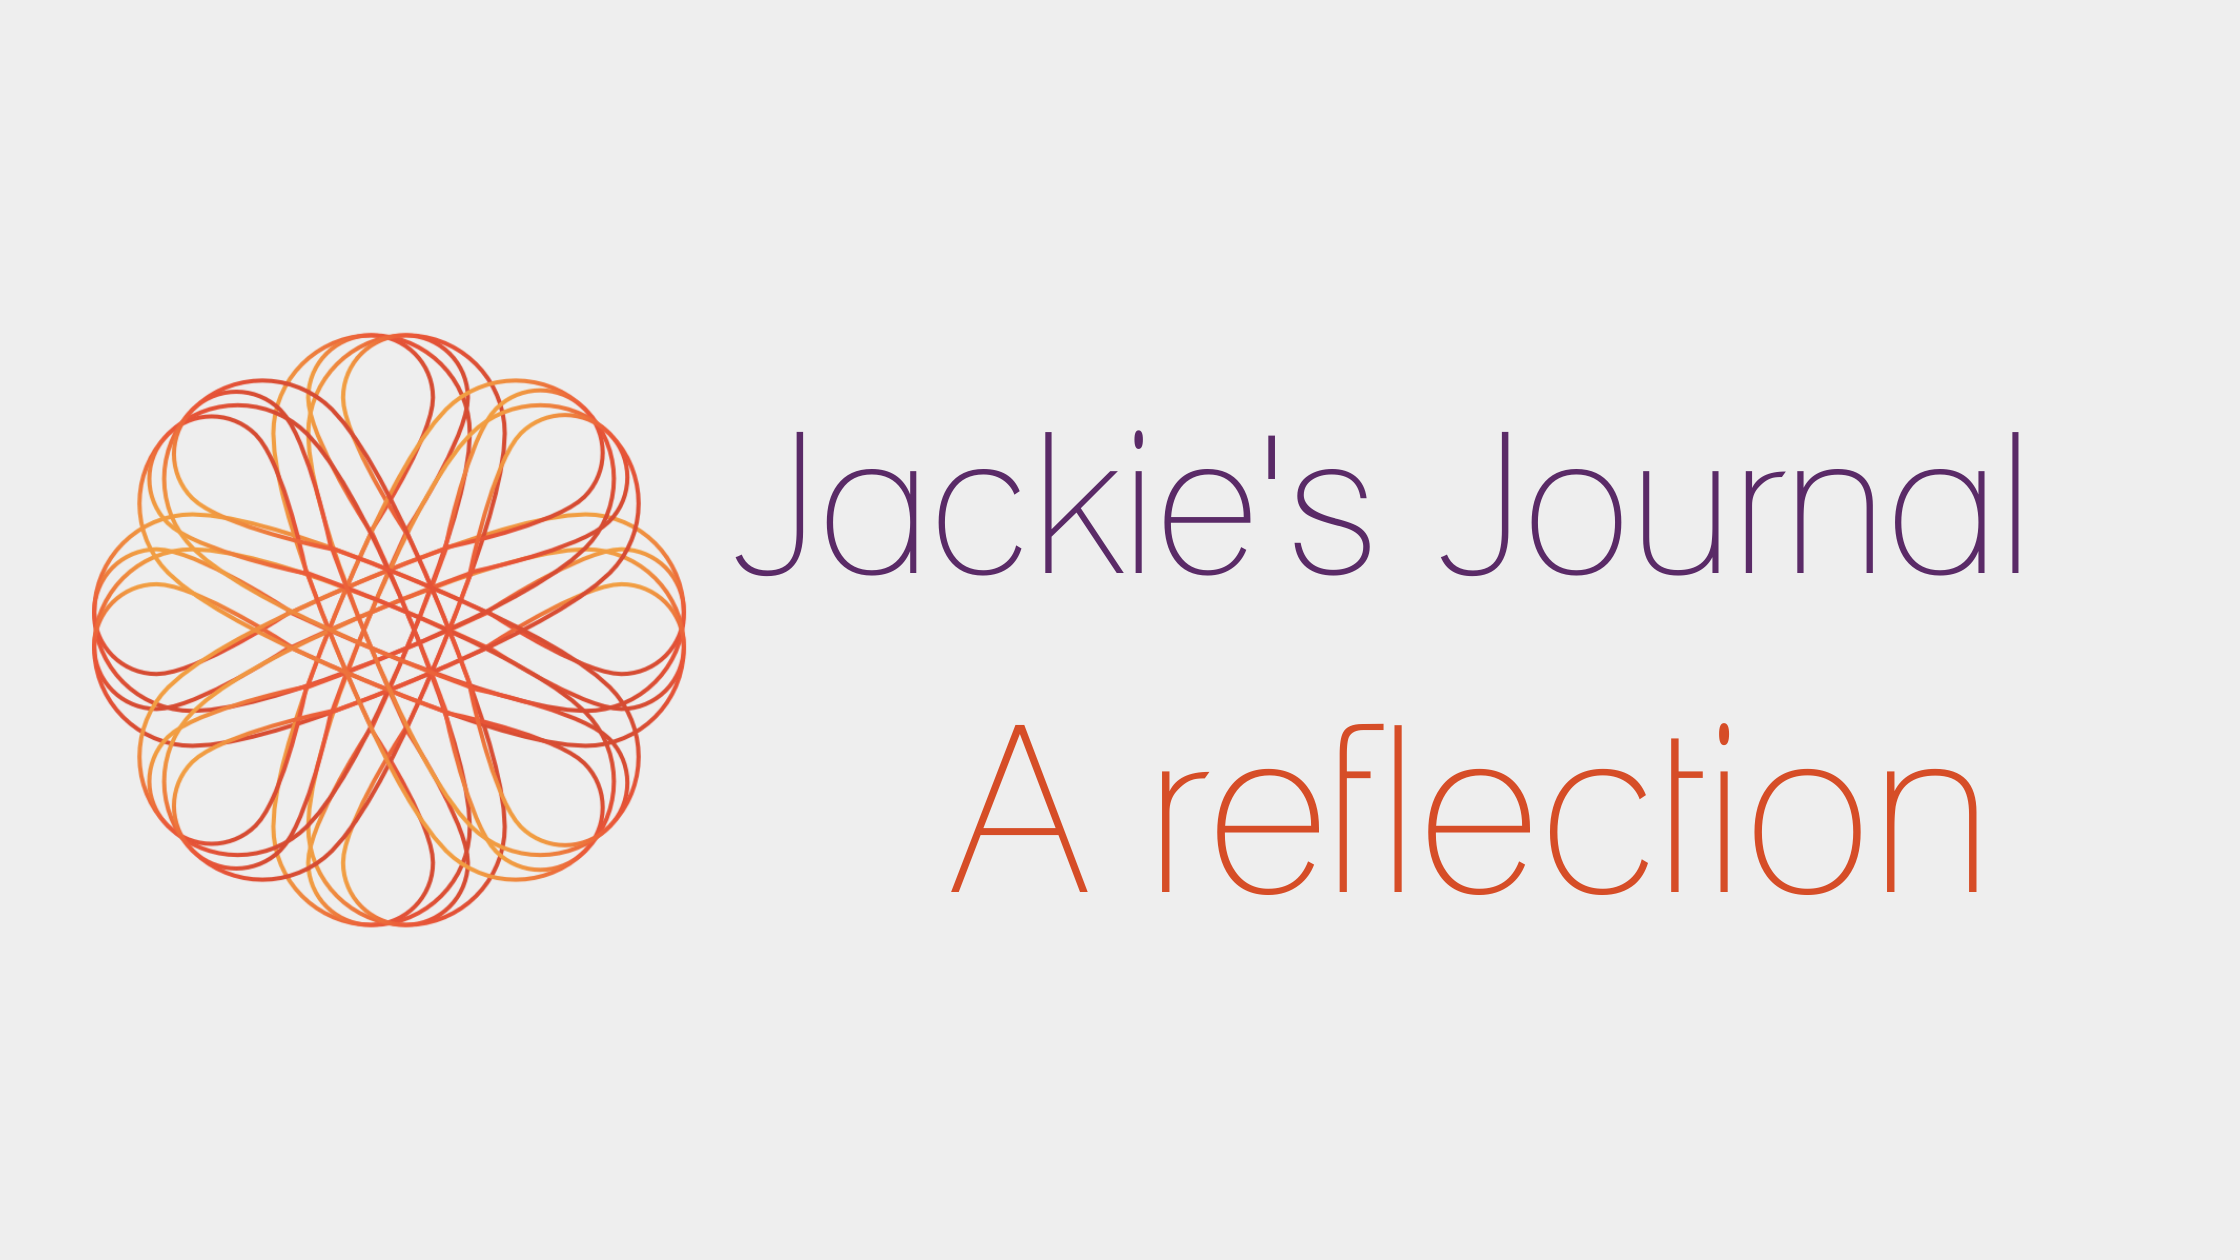 Jackie's journal, a reflection on business shadows